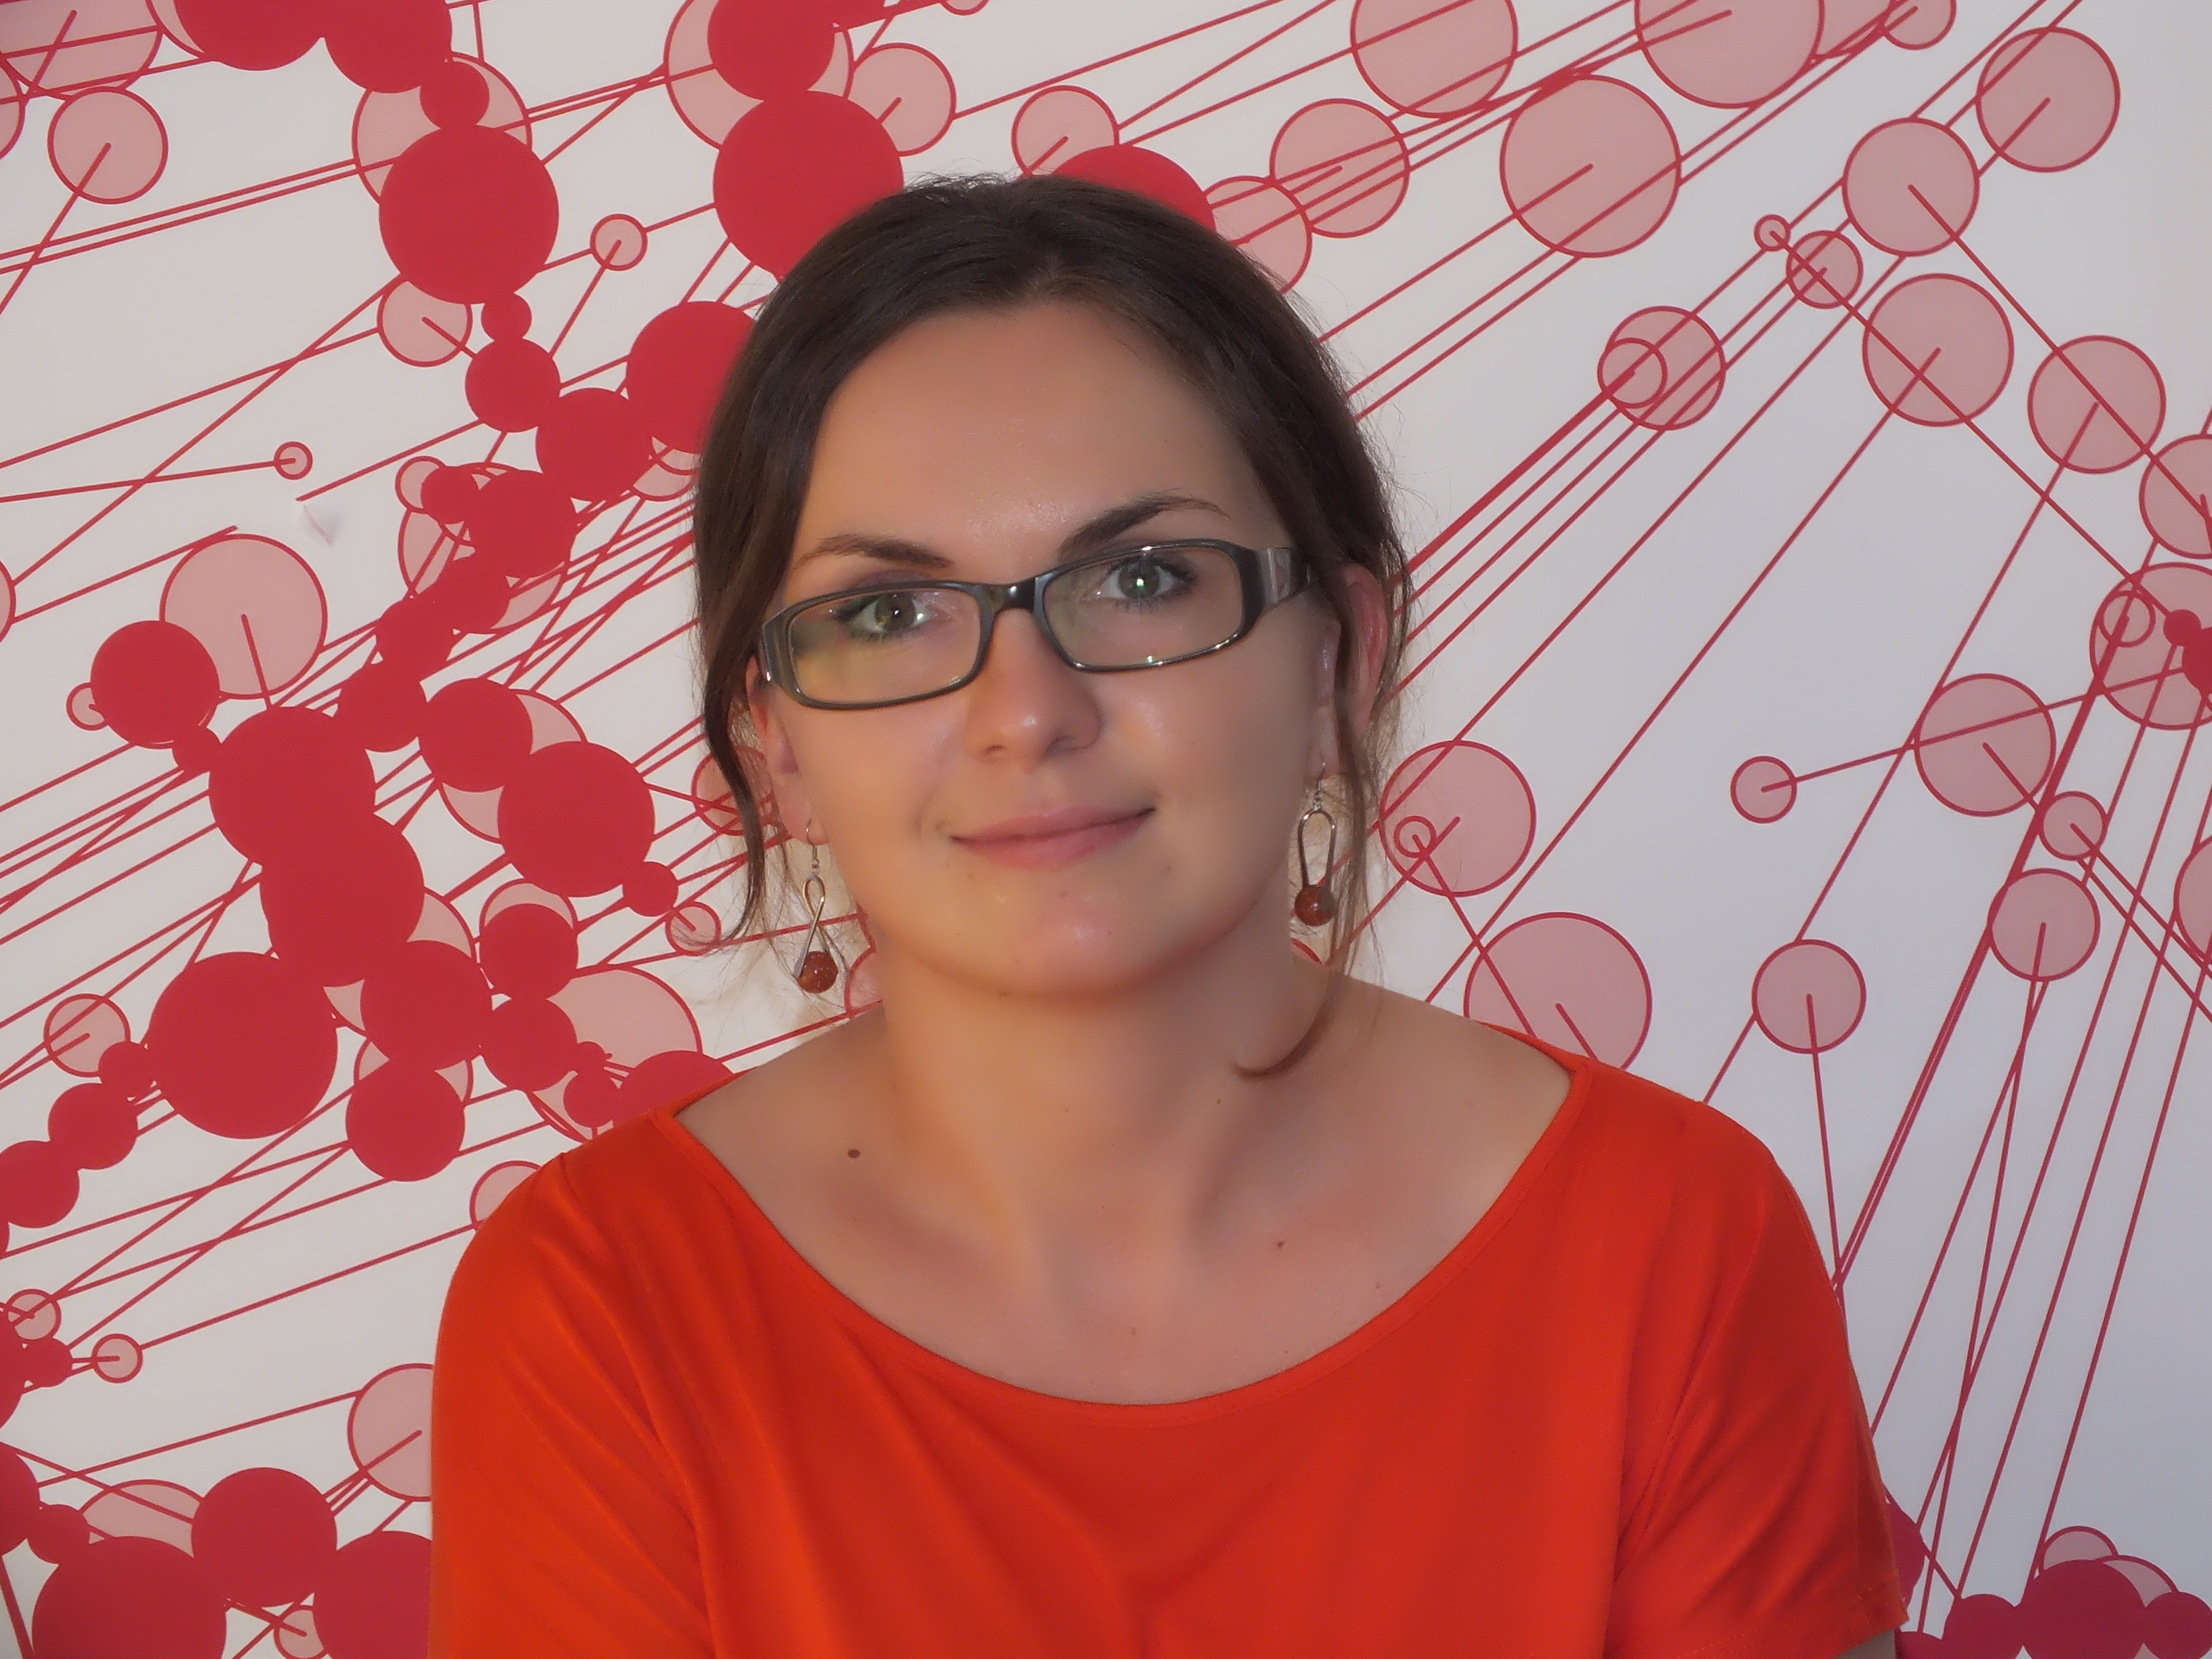 Georgiana Stuparu, XAPT Solutions: Microsoft Dynamics 365 for Finance and Operations susține comportamentul nativ al consumatorului de tehnologie